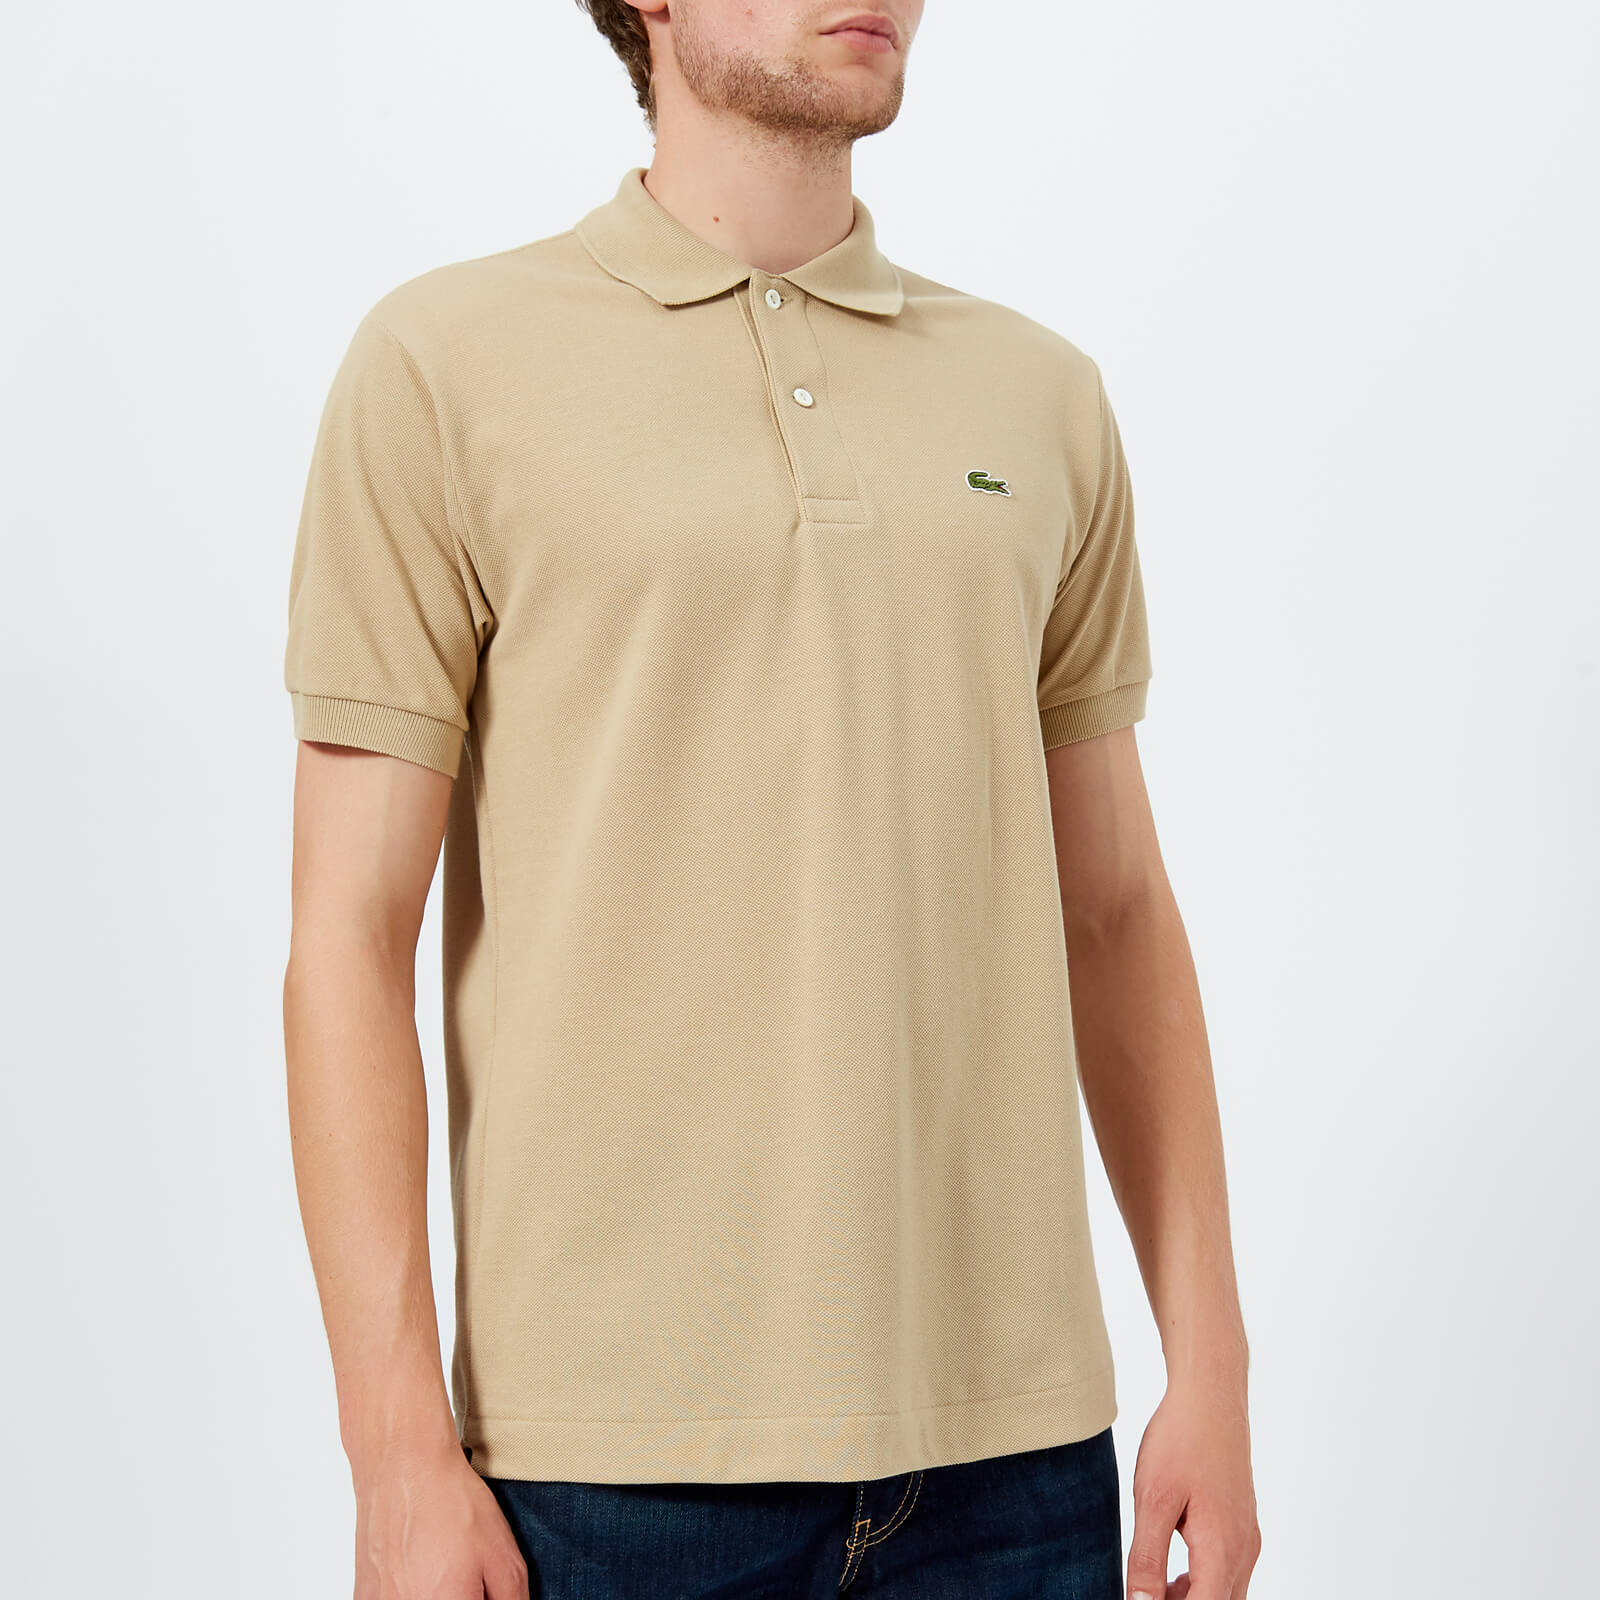 c5b3486c830d7 Lacoste Men s Classic Fit Polo Shirt - Viennese Camel - Free UK Delivery  over £50